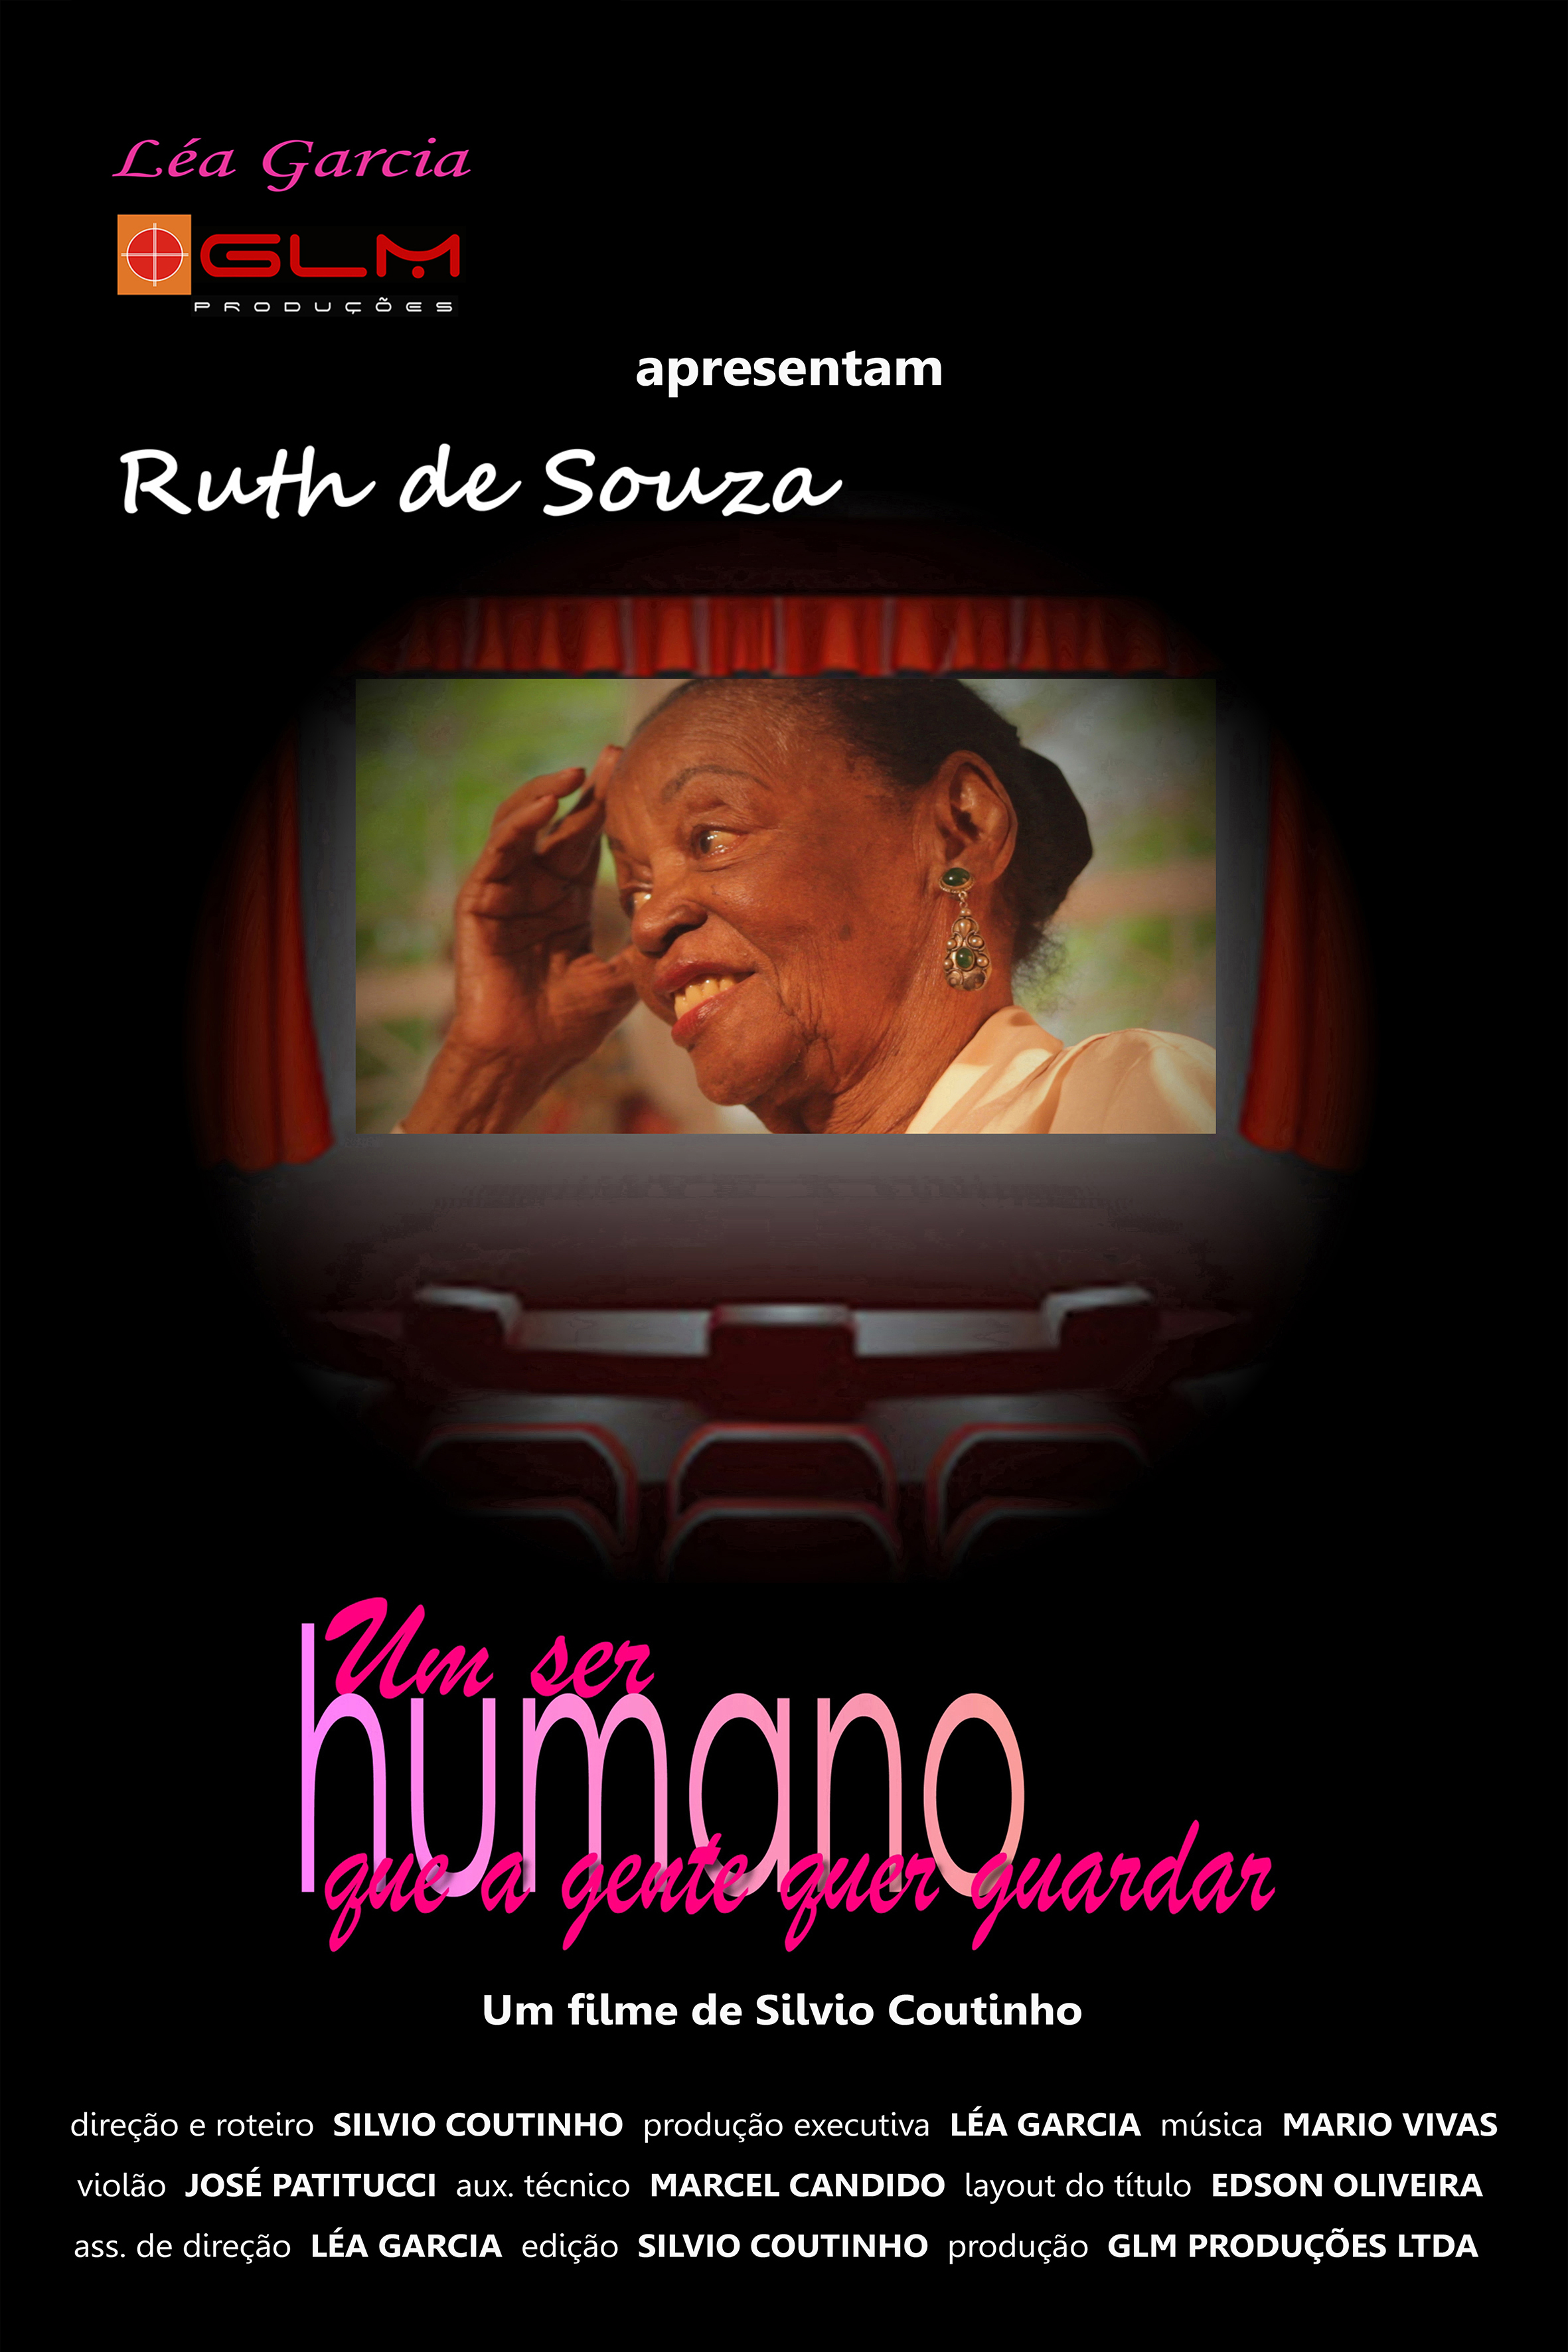 RUTH DE SOUZA - an human being we want to remember - 2013